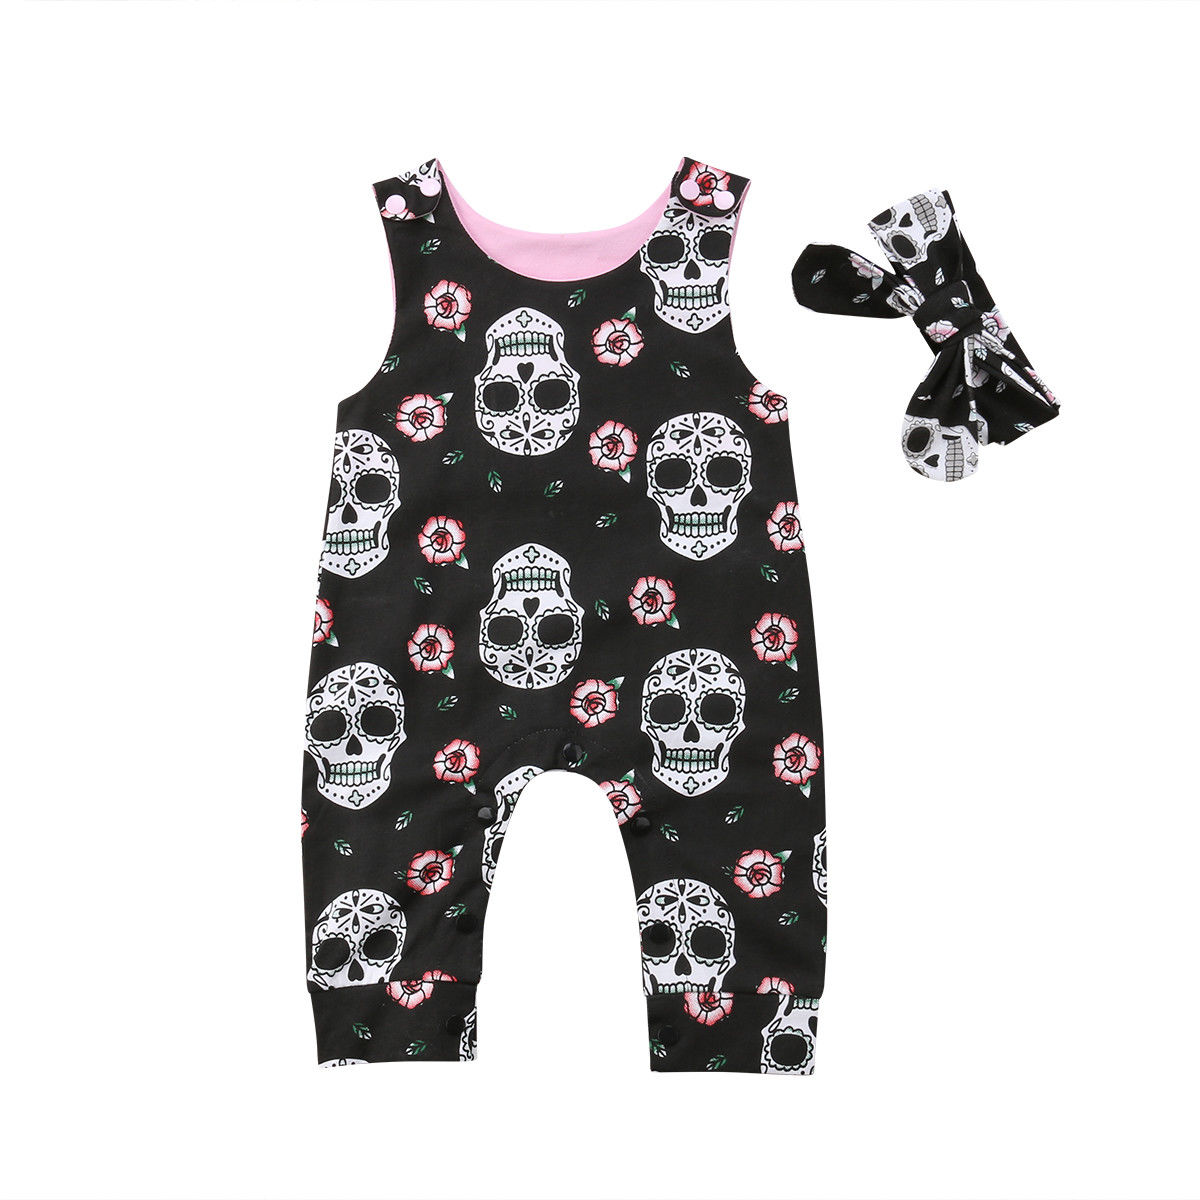 2pcs baby toddler Kids boys girls outfits top+rompers OVERALL SETS bear